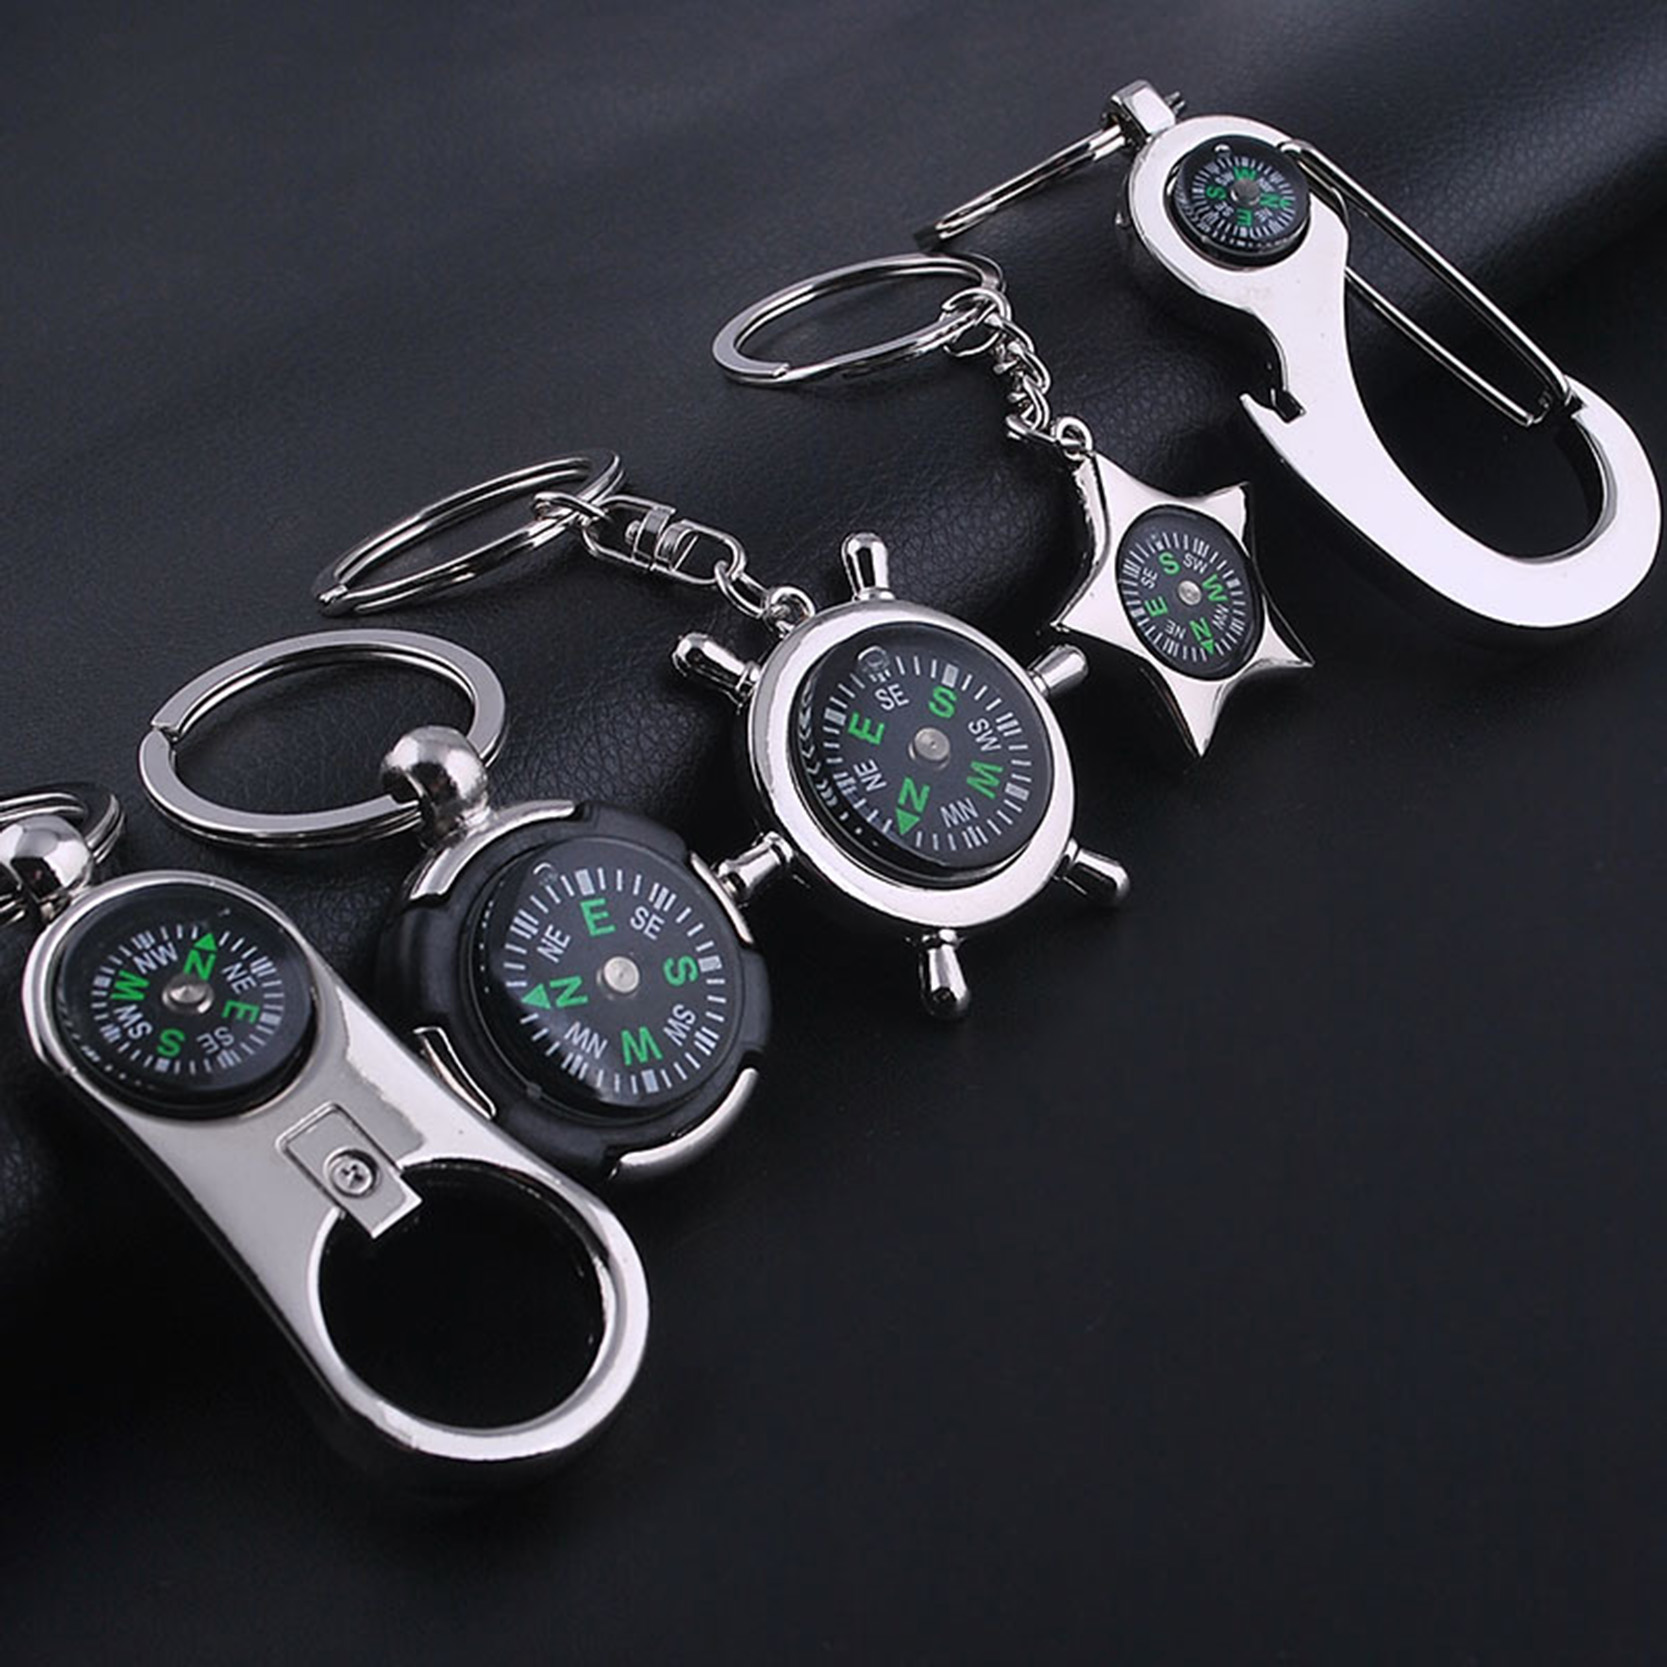 Vintage Compass With Beer Opener Key Chains Rings Mens Silver Color KeyChains Car Bag Pendant Keyring Key Holder Gift Jewelry